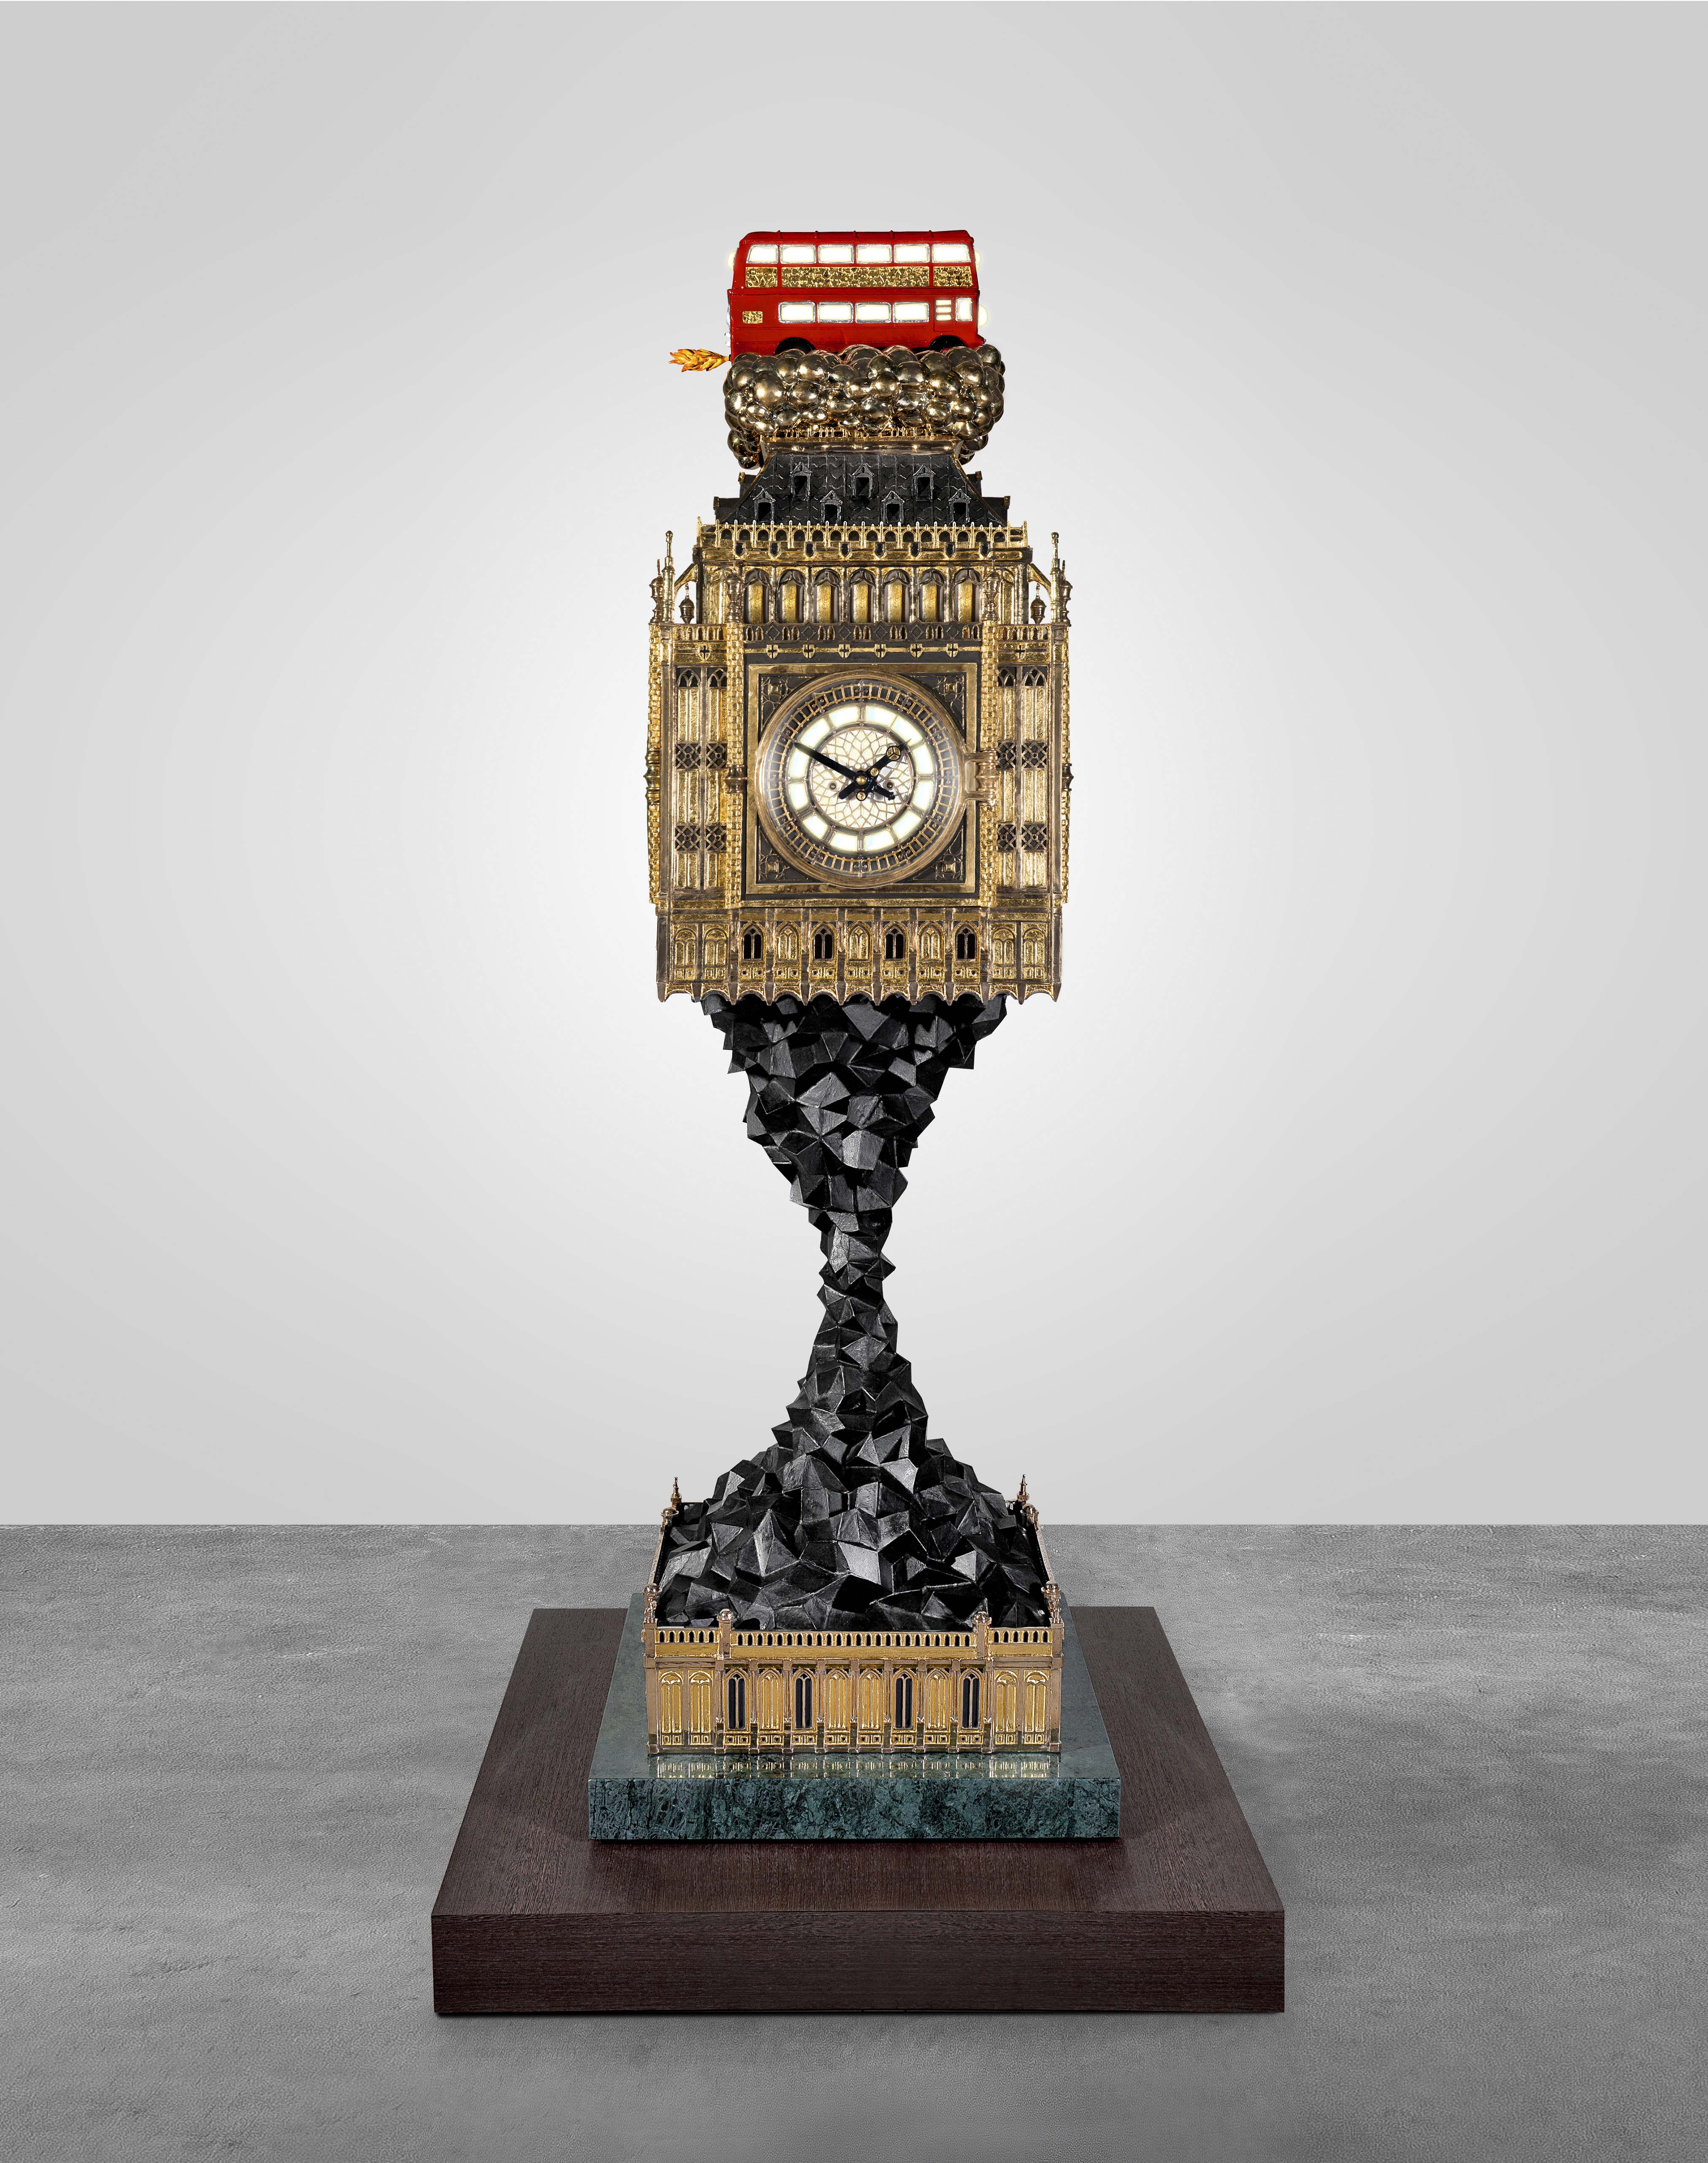 BIG BEN (AFTERMATH) 2009 - 2014 POLISHED AND PATINATEDED BRONZE, ALUMINIUM, BRASS, 24K GILDING AND SILVERLEAF, HAND PAINTINGS, HAND BLOWN GLASS, WESTMINSTER CLOCKWORKS AND GONG, LED FITTINGS, STEEL CONSTRUCTION, POLISHED VERDE GUATEMALA MARBLE, WENGÉ H250 L120 W120 CM / H98.4 L47.2 W47.2 IN LIMITED EDITION OF PROTOTYPE + 5 + 2 AP